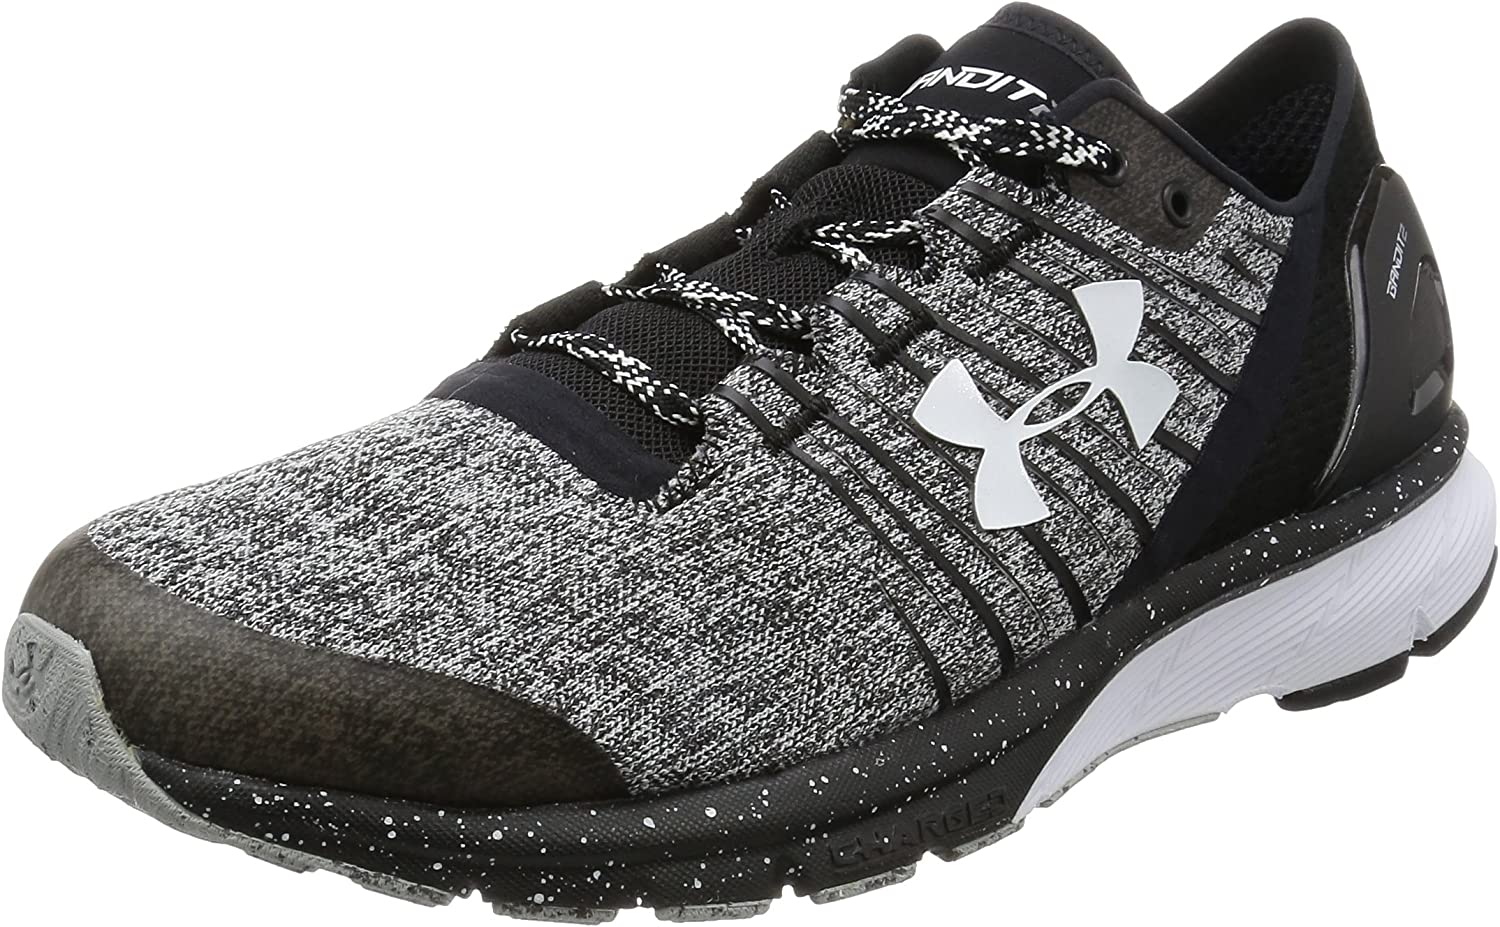 Under Armour Ua Charged Bandit 2, Men's